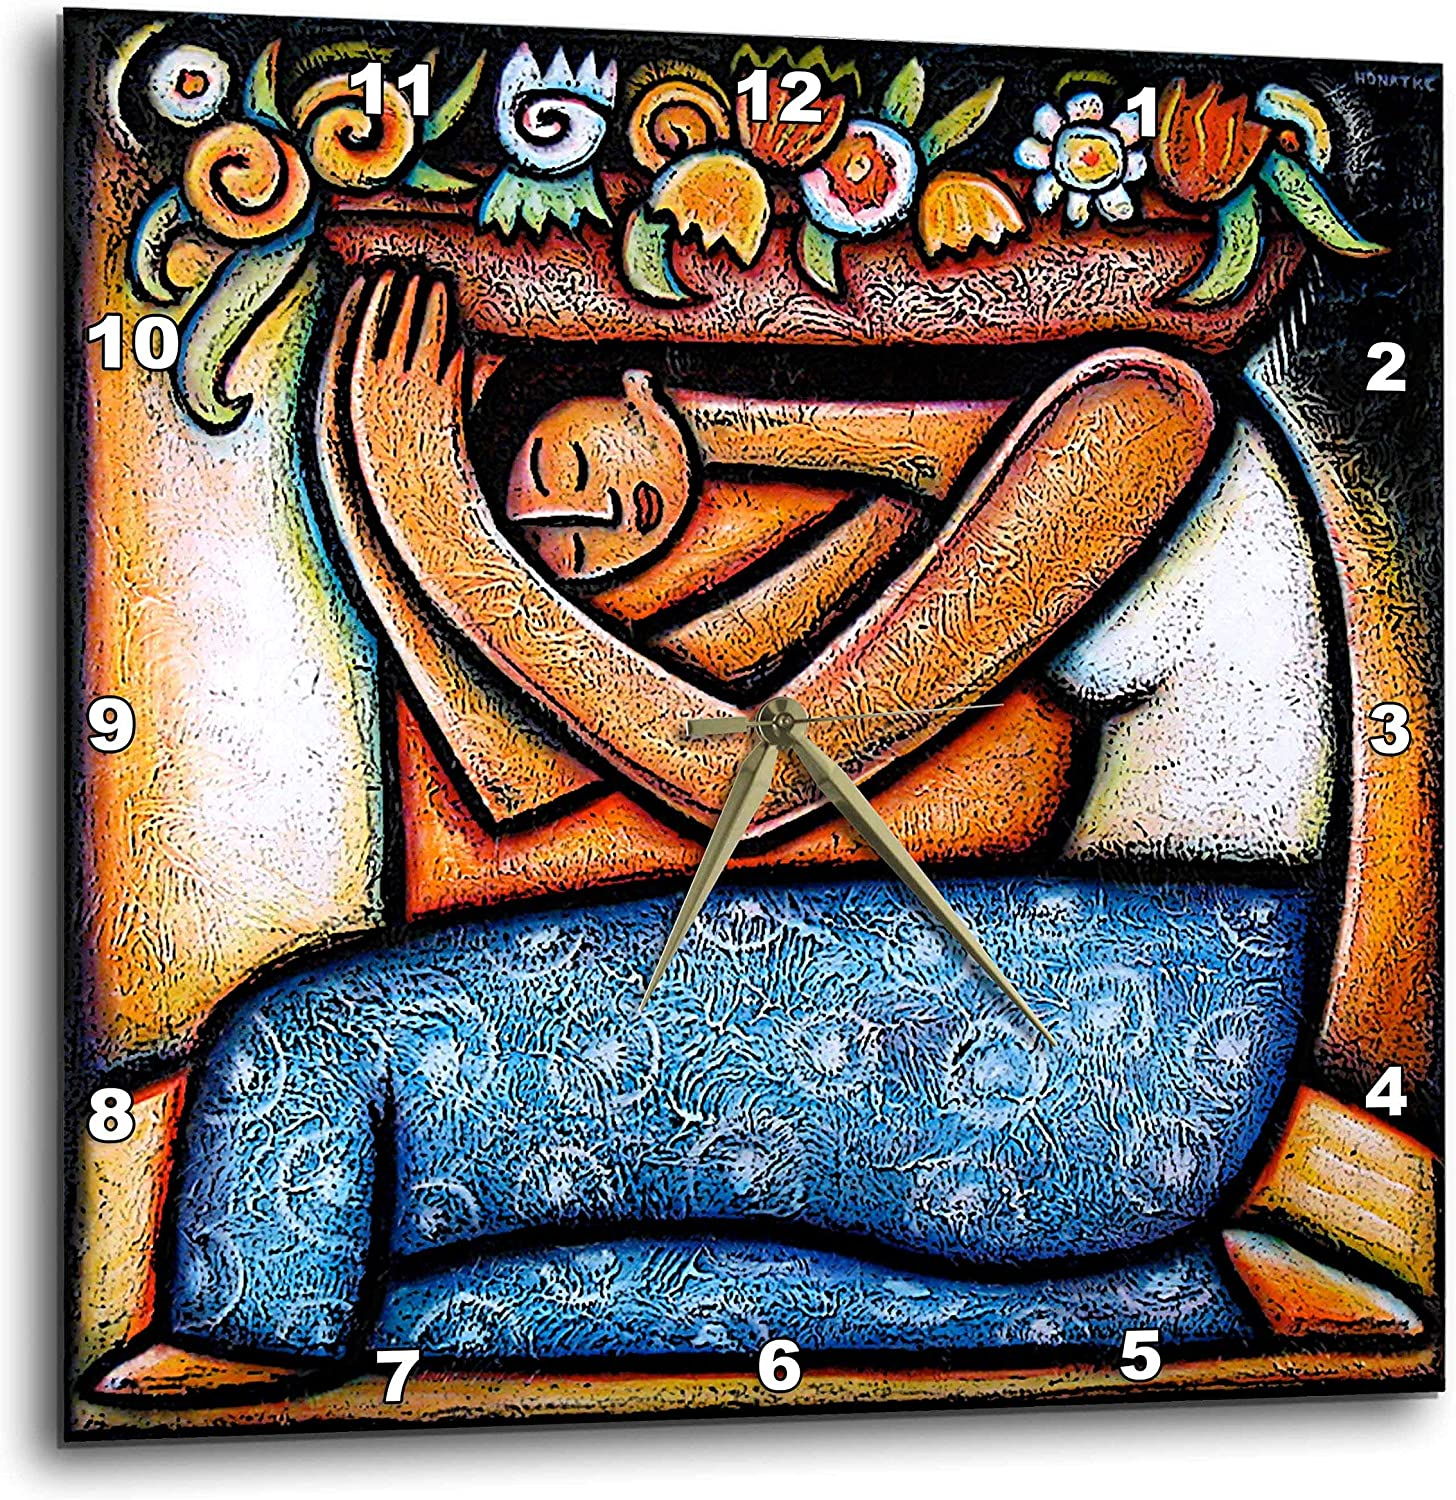 3dRose LLC dpp_21129_3 Flower Girl Mexican Art Colorful Wall Clock, 15 by 15-Inch